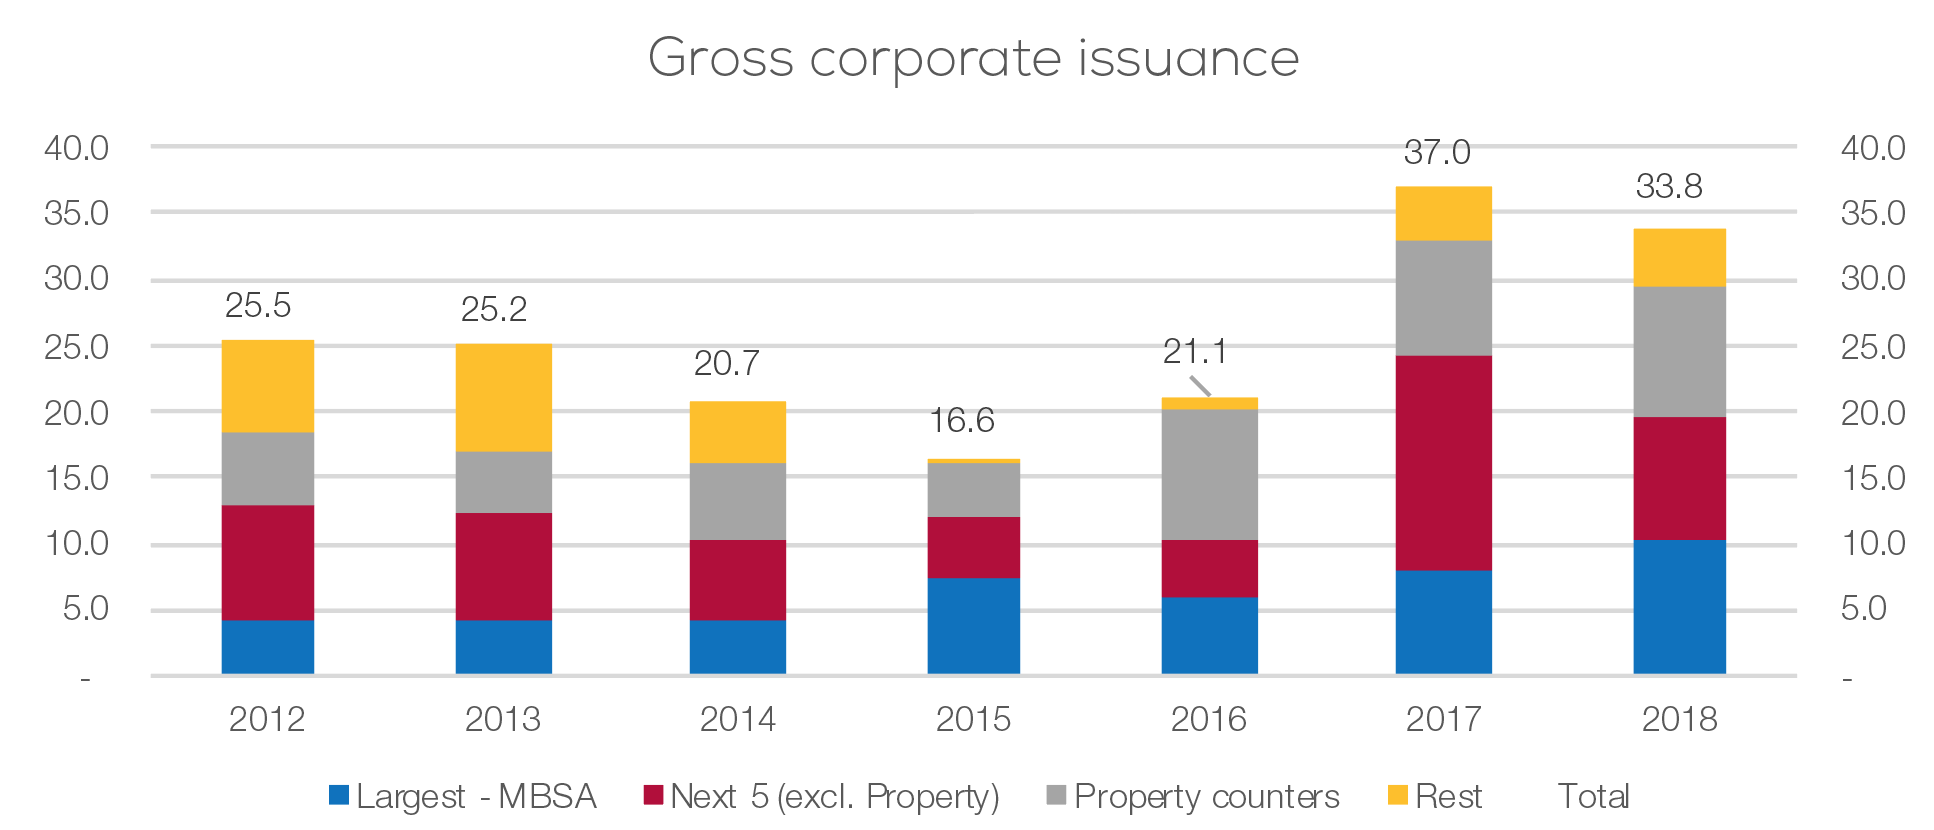 Gross corporate issuance